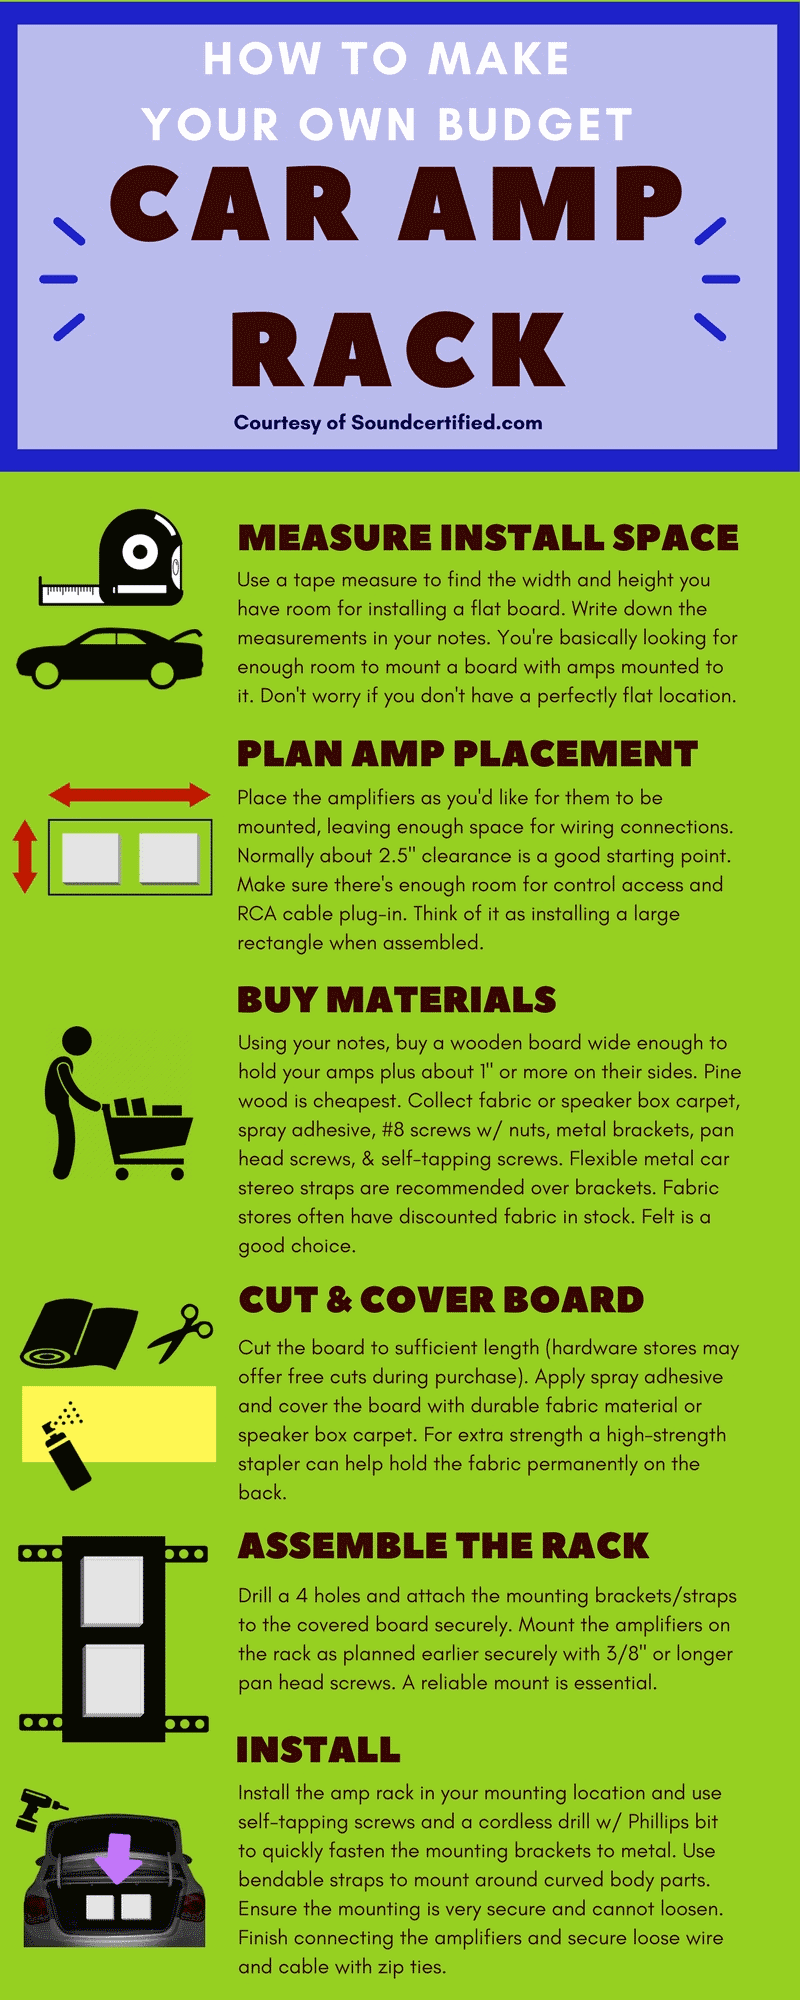 The Diy Car Amp Rack Guide How To Build Your Own In Very Useful And Easy Use It As An Amplifier Project We Infographic Image